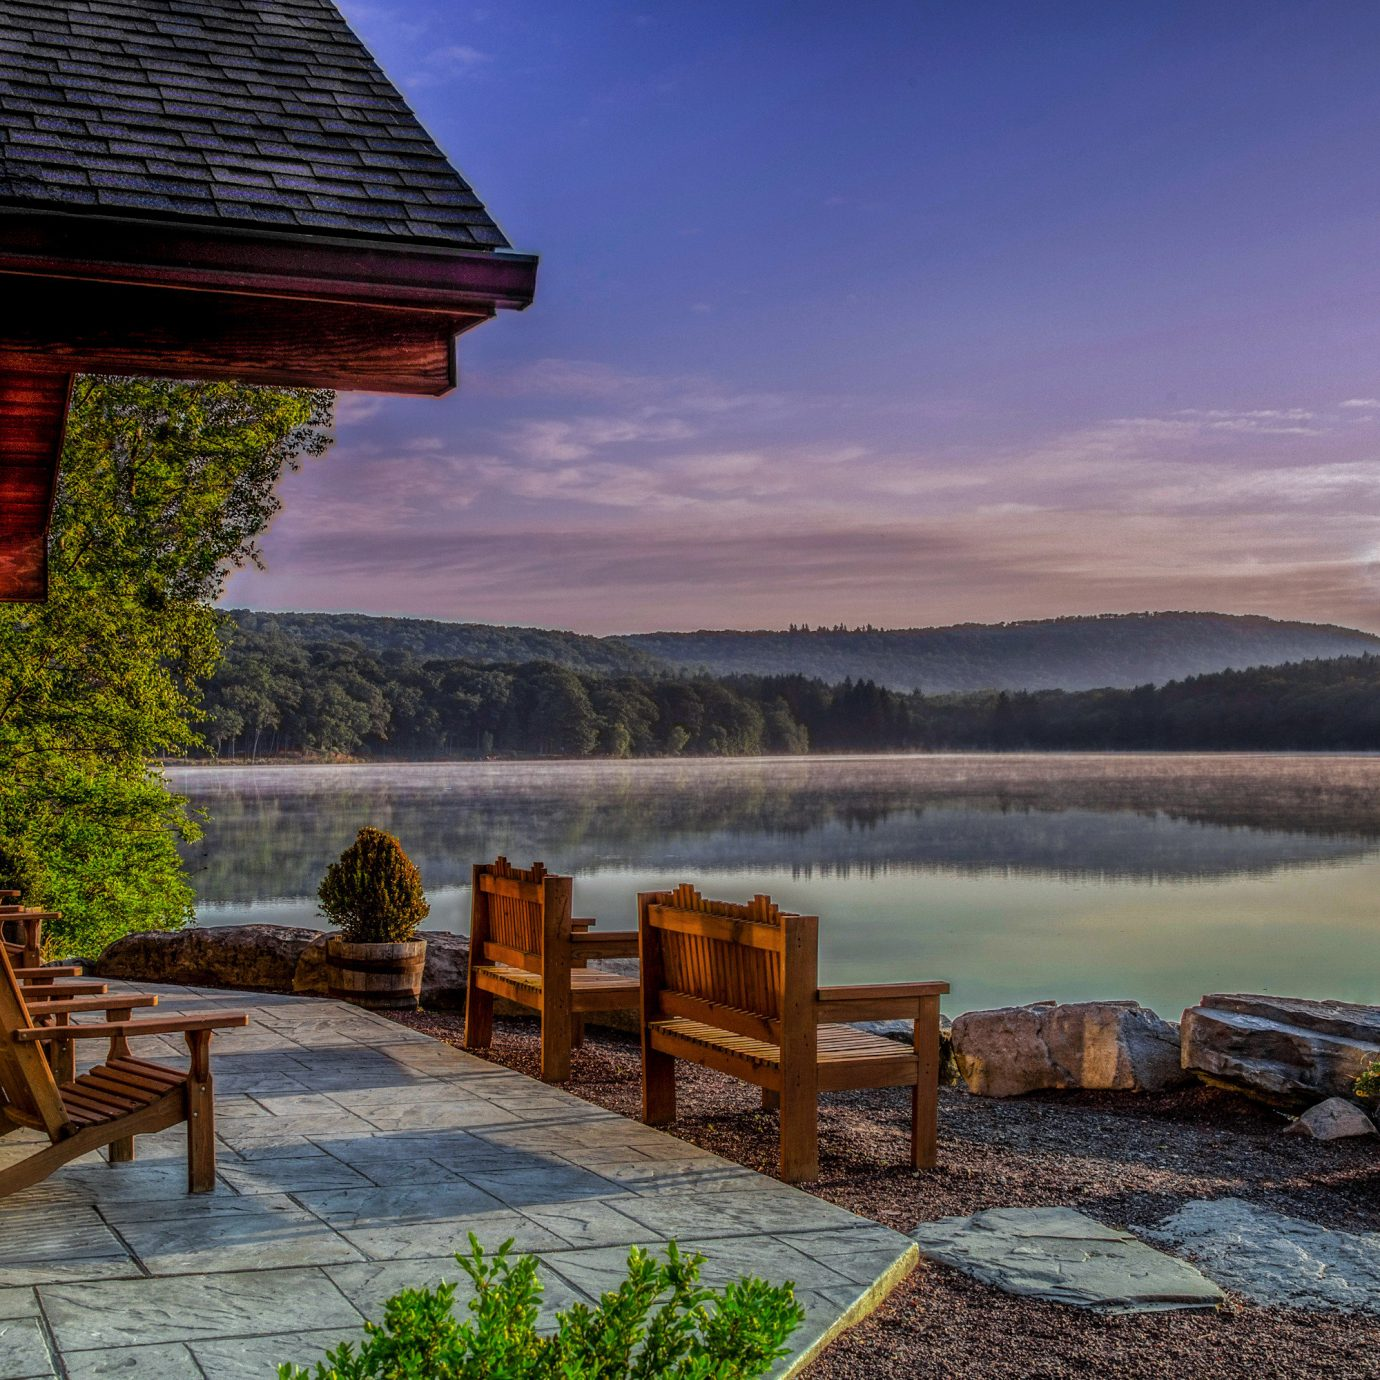 Country Courtyard Historic Lodge Lounge Natural wonders Nature Outdoors Patio Waterfront wooden morning landscape evening Lake Sea overlooking stone